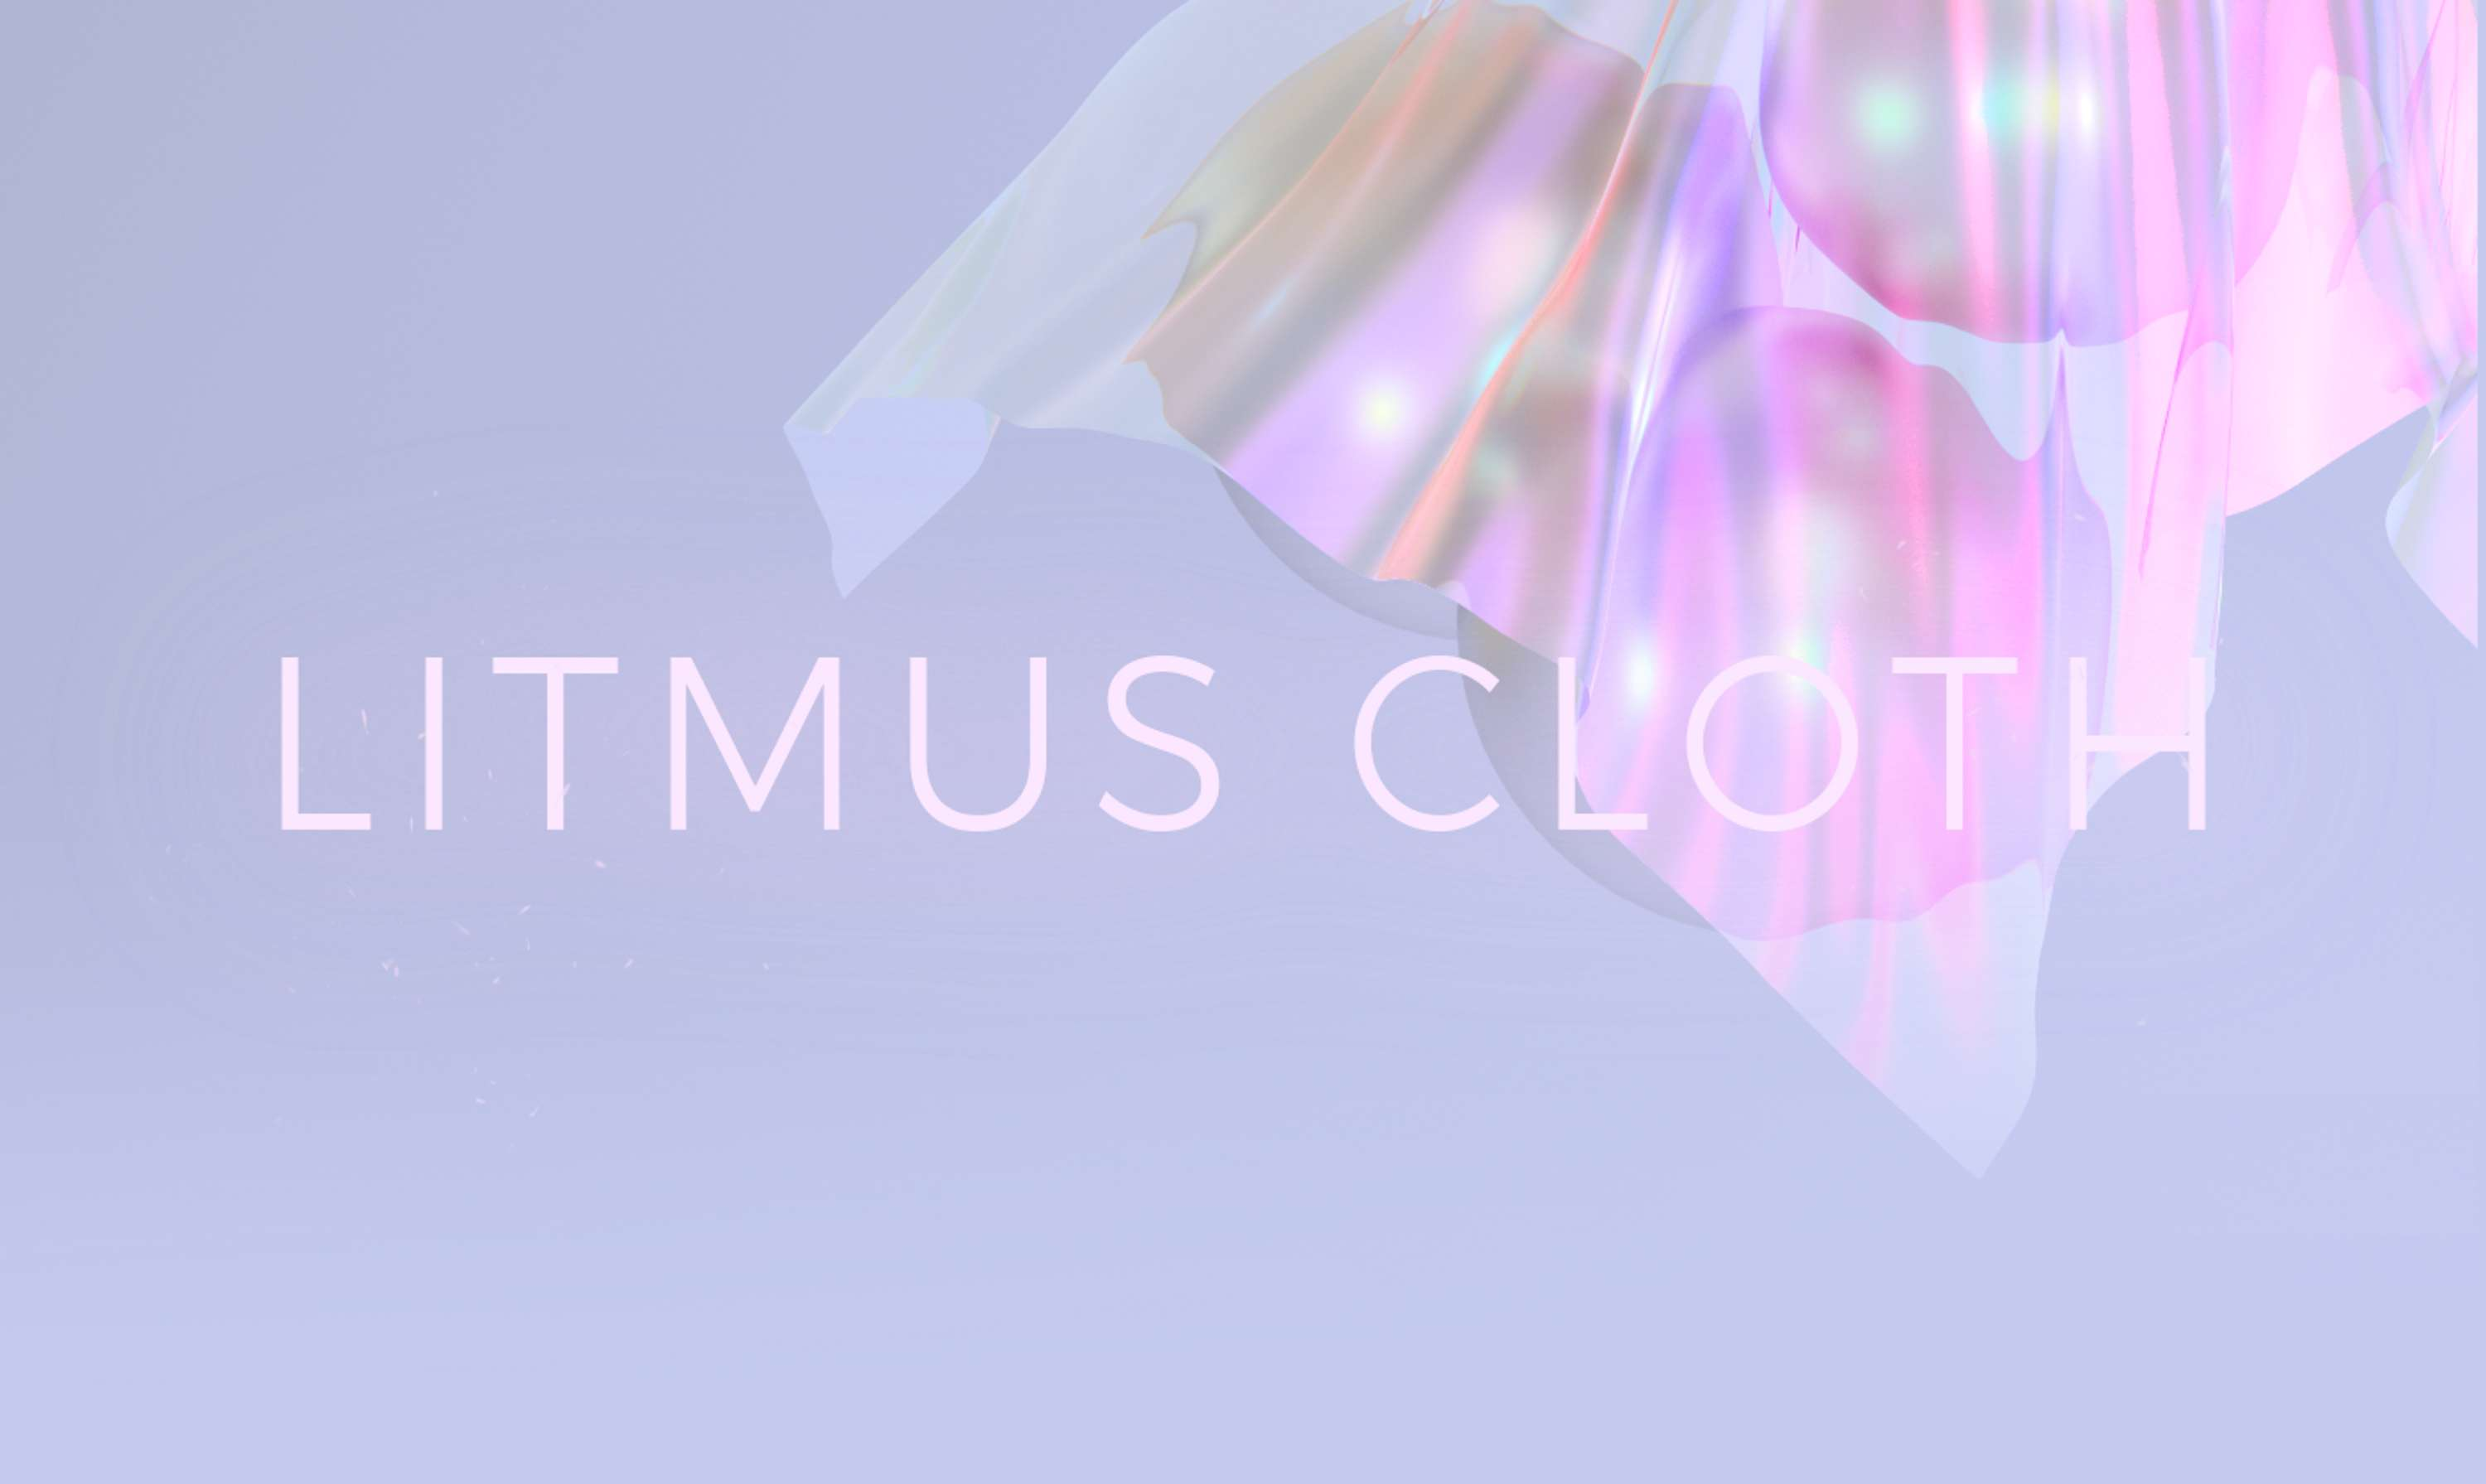 LITMUS CLOTH | The Dots